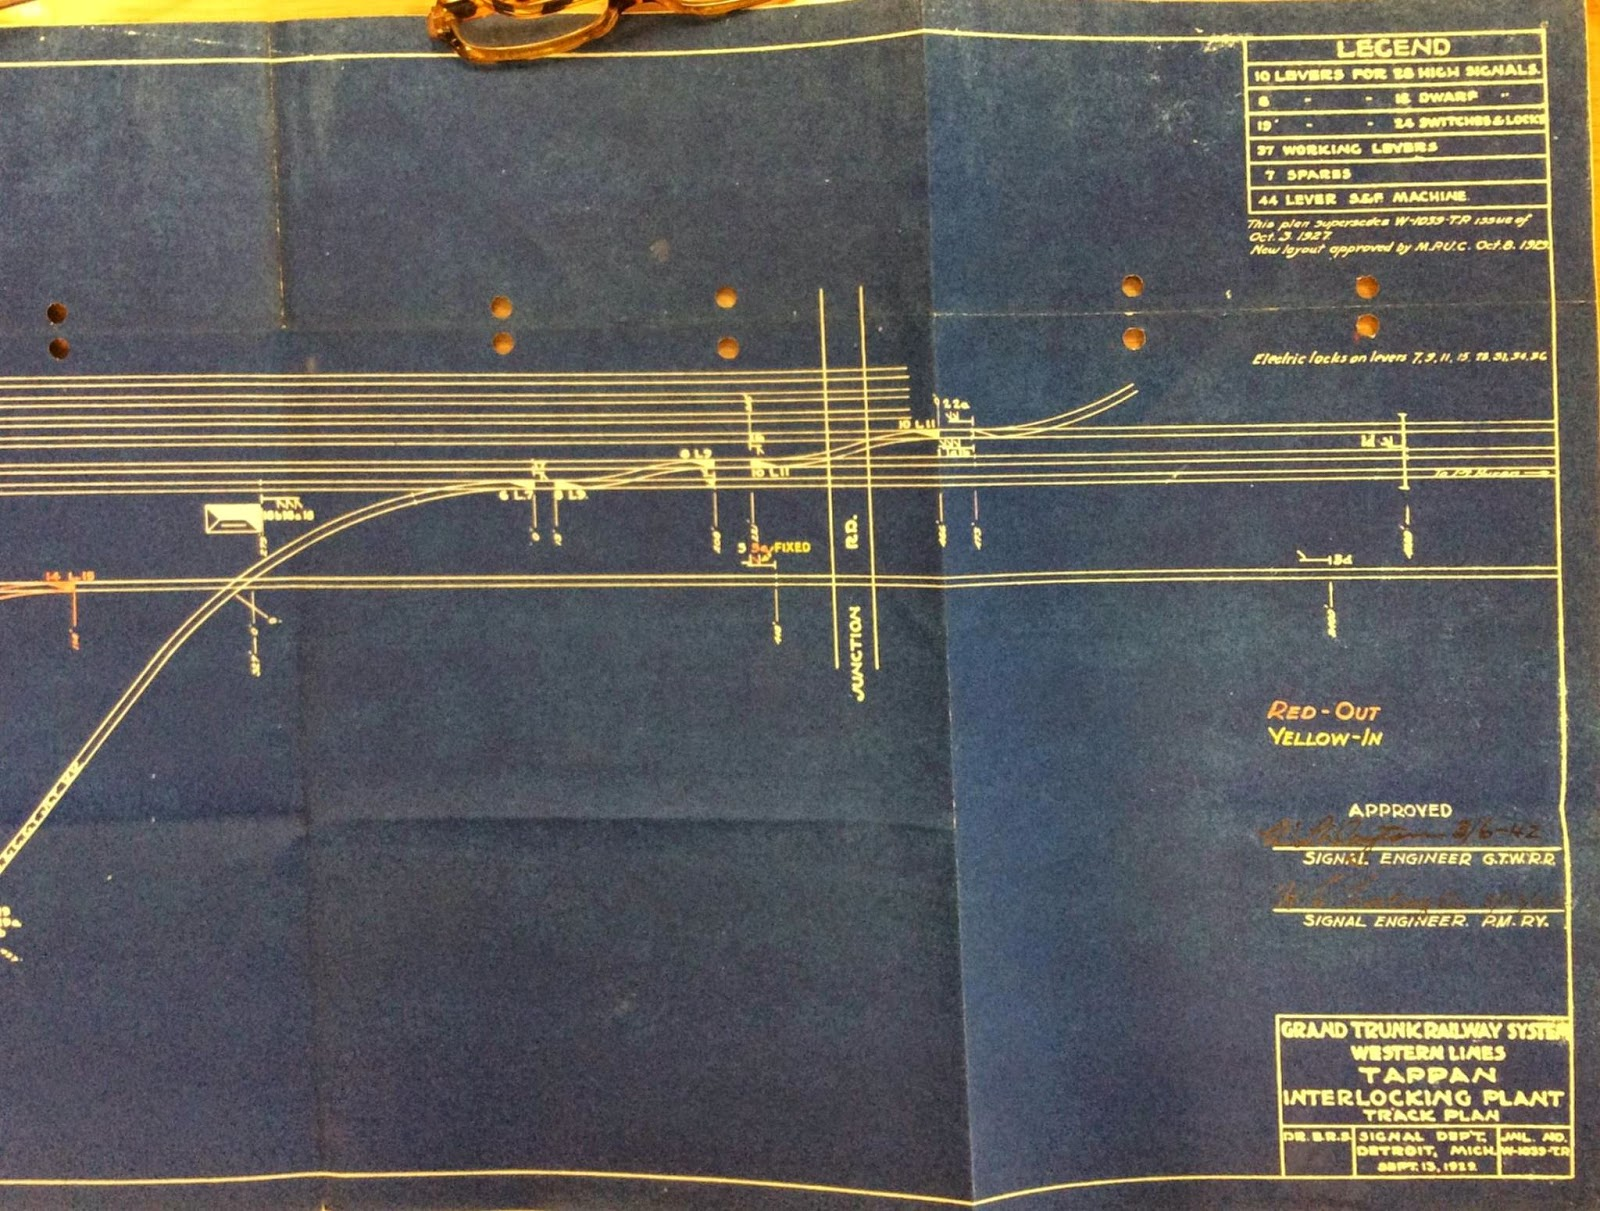 Grand Trunk Western Flint Subdivision Tappan Ac Wiring Diagram Interlocking Plant Provided By Mike Delaney Of The Gtwhs